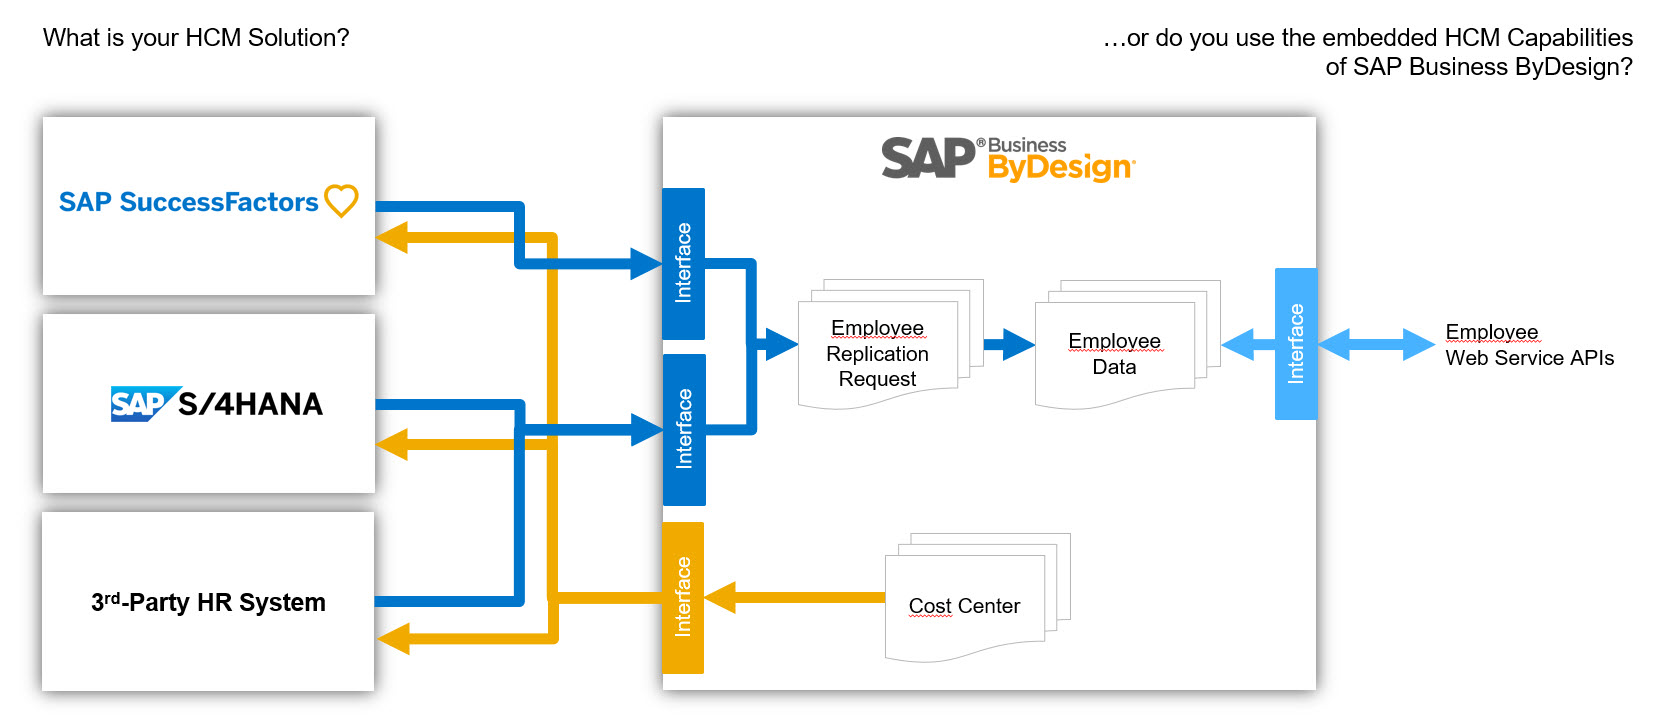 Connect Sap Bydesign To Best Of Breed Hcm Solutions Sap